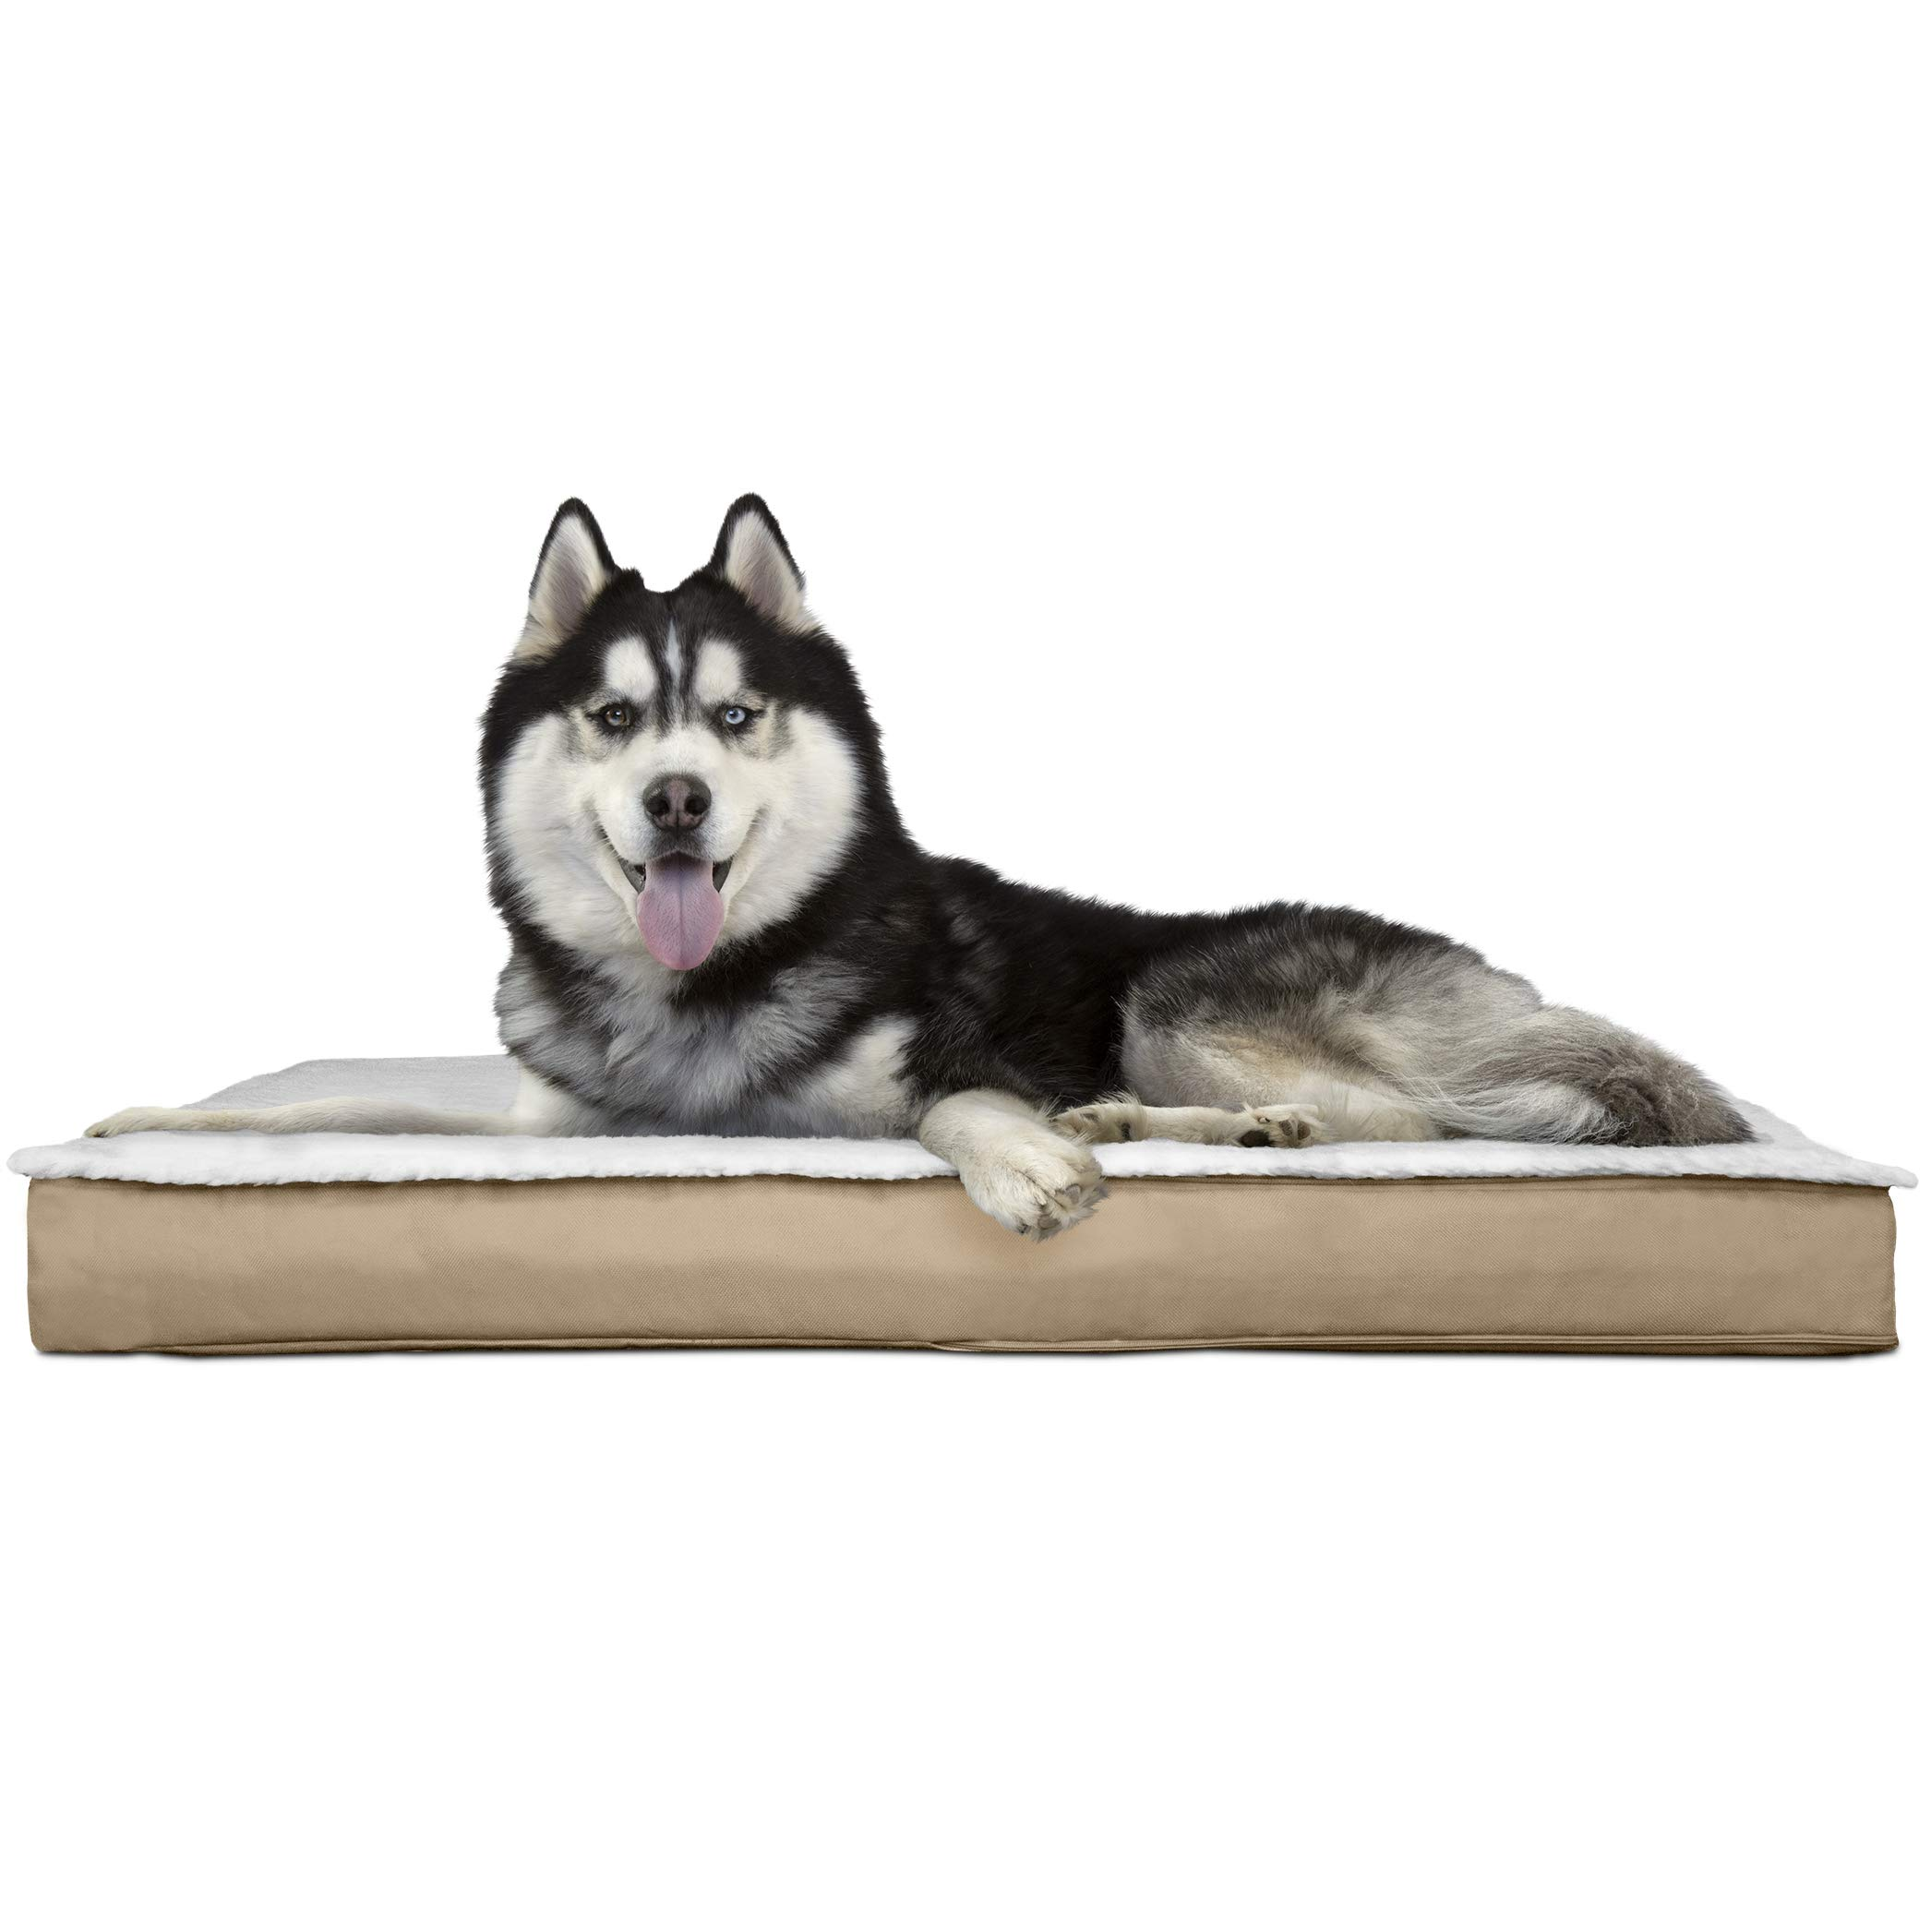 FurHaven Pet Dog Bed | Deluxe Memory Foam Convertible Sherpa Panel Outdoor Mattress Pet Bed for Dogs & Cats, Sand, Jumbo